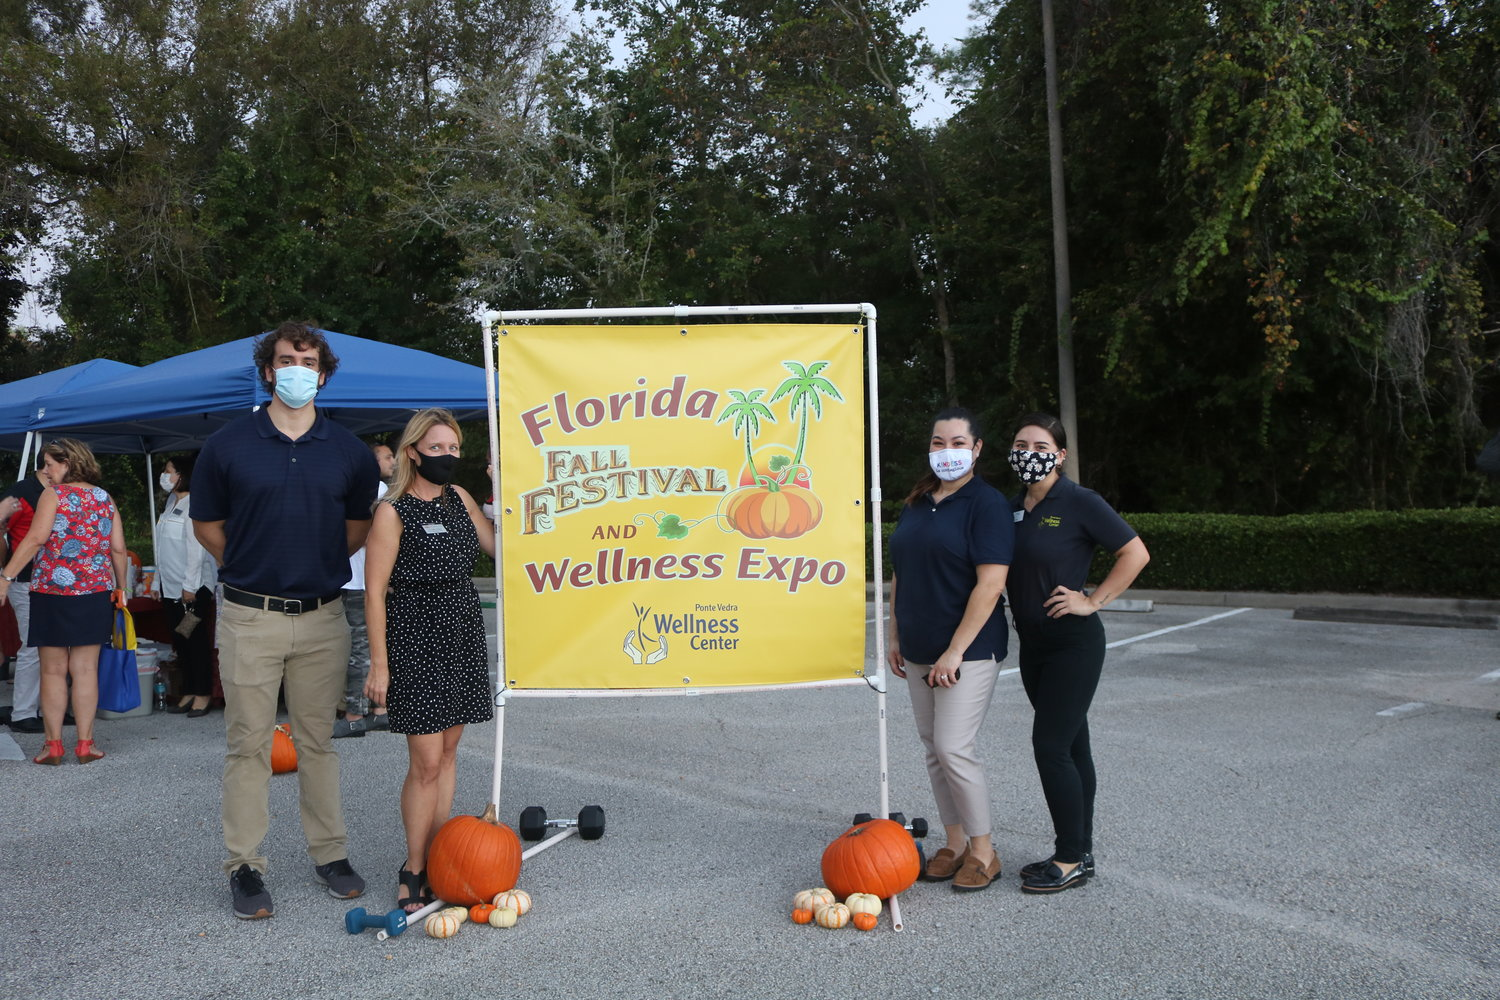 Ponte Vedra Wellness Center staff members Marcelo Sacedo (from left), owner Dr. Erika Hamer, Lisa Tromsdorff and Janine Parker celebrated the center's 16th anniversary with a fall festival and wellness expo.